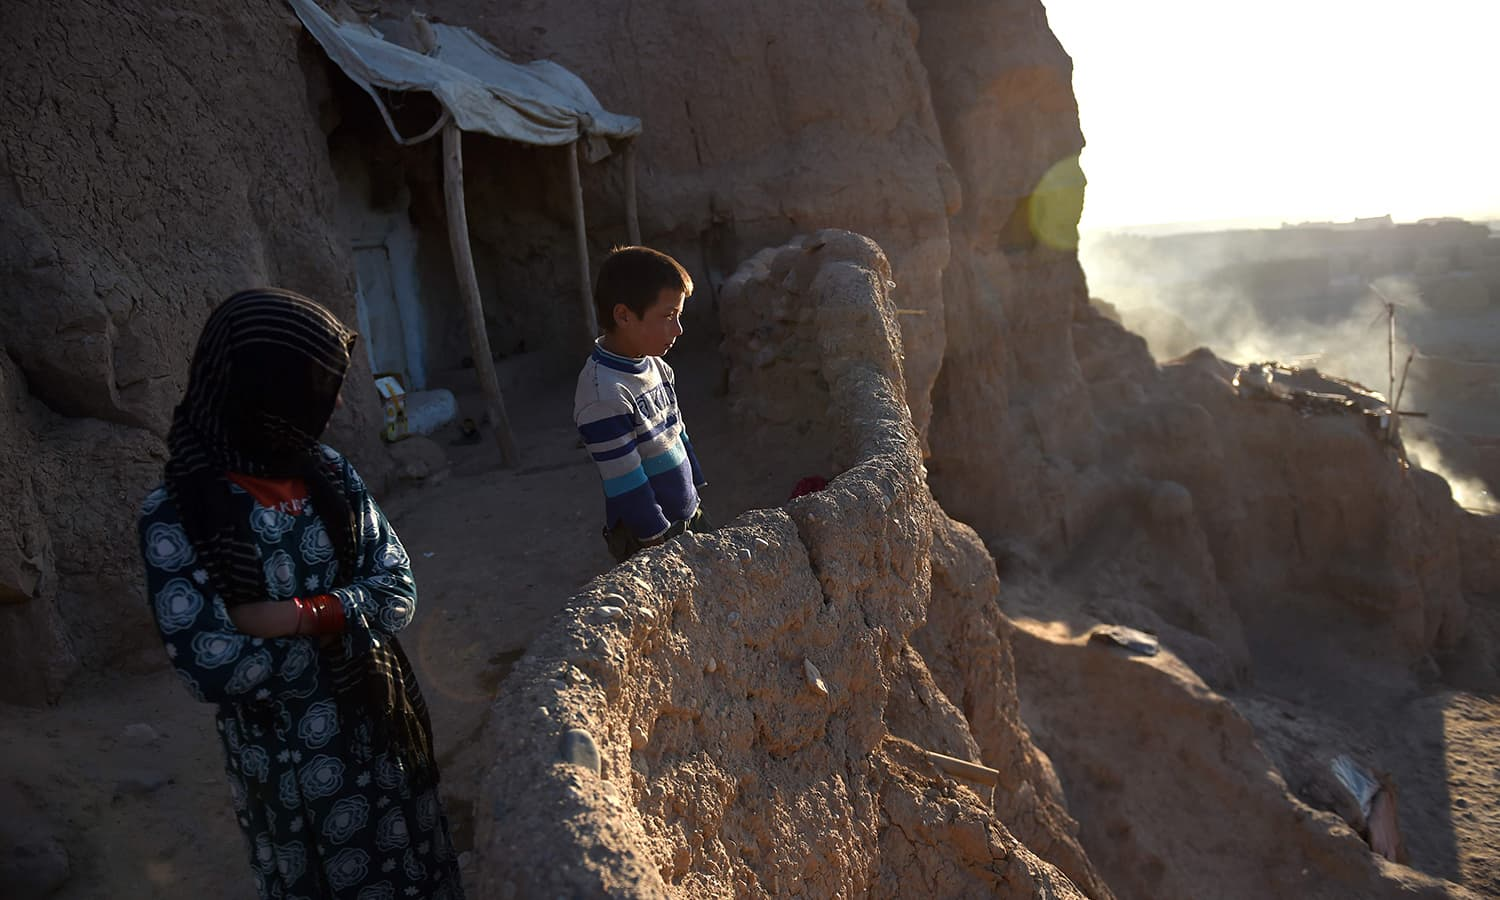 Afghan Hazara children stand in front of the cave where they live with their family in Bamiyan province. ─AFP